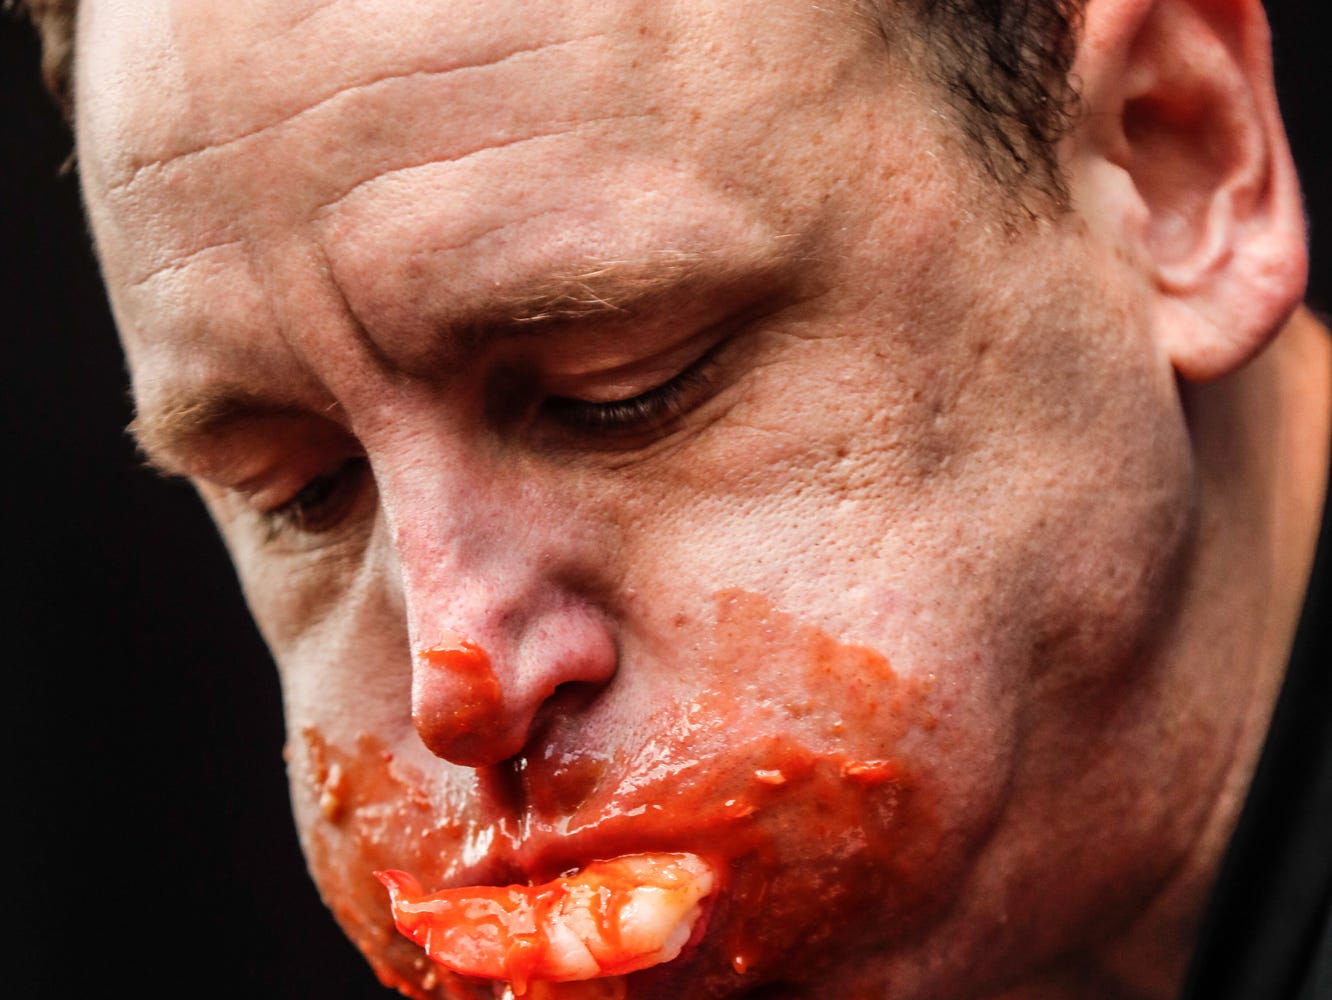 Major League Eater, Joey Chestnut competes in the sixth annual World Famous St. Elmo Shrimp Cocktail Eating Championship, held during the Meijer Tailgate Party on Georgia St. in Indianapolis on Saturday, Dec. 1, 2018. Chestnut won, setting a new world record, eating 18 pounds and 9.6 ounces of St. Elmo Shrimp Cocktail in 8 minutes.